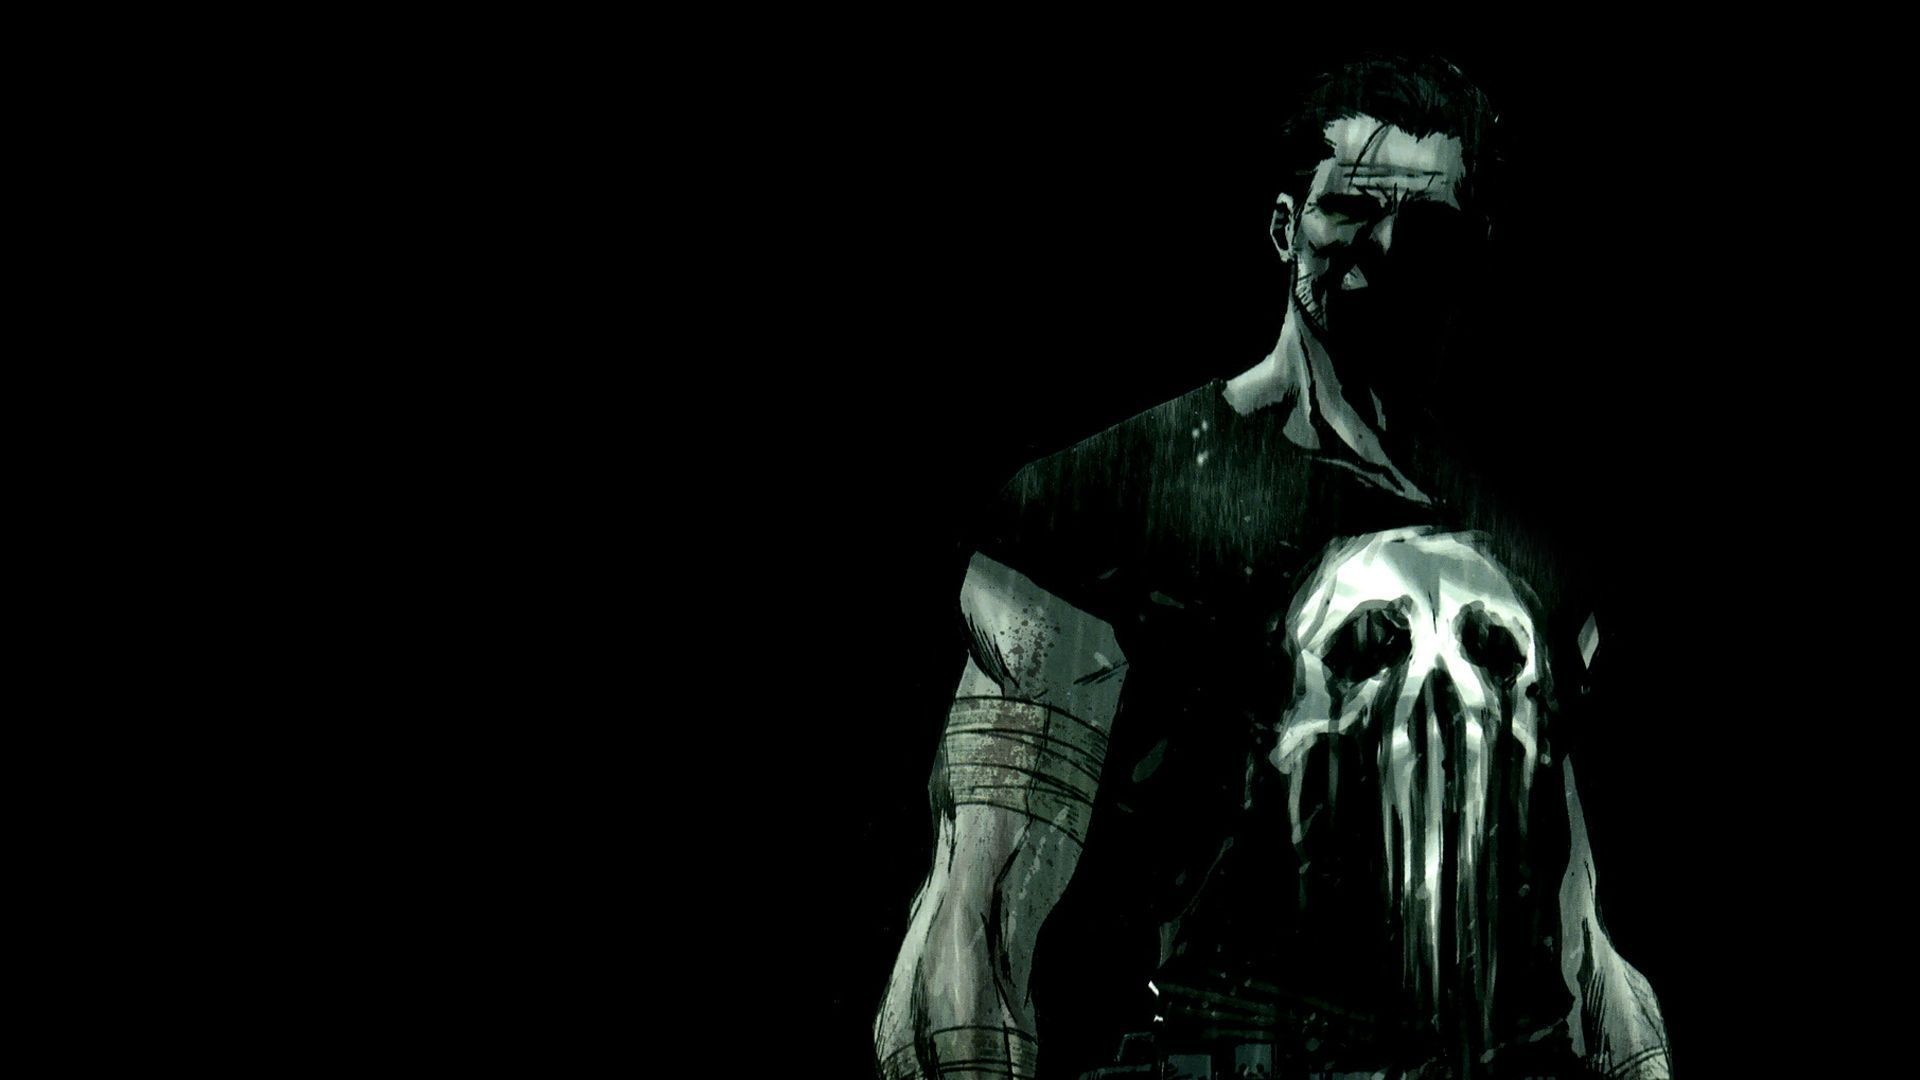 punisher wallpaper backgrounds hd kB by Stede Murphy ×   HD Wallpapers    Pinterest   Punisher